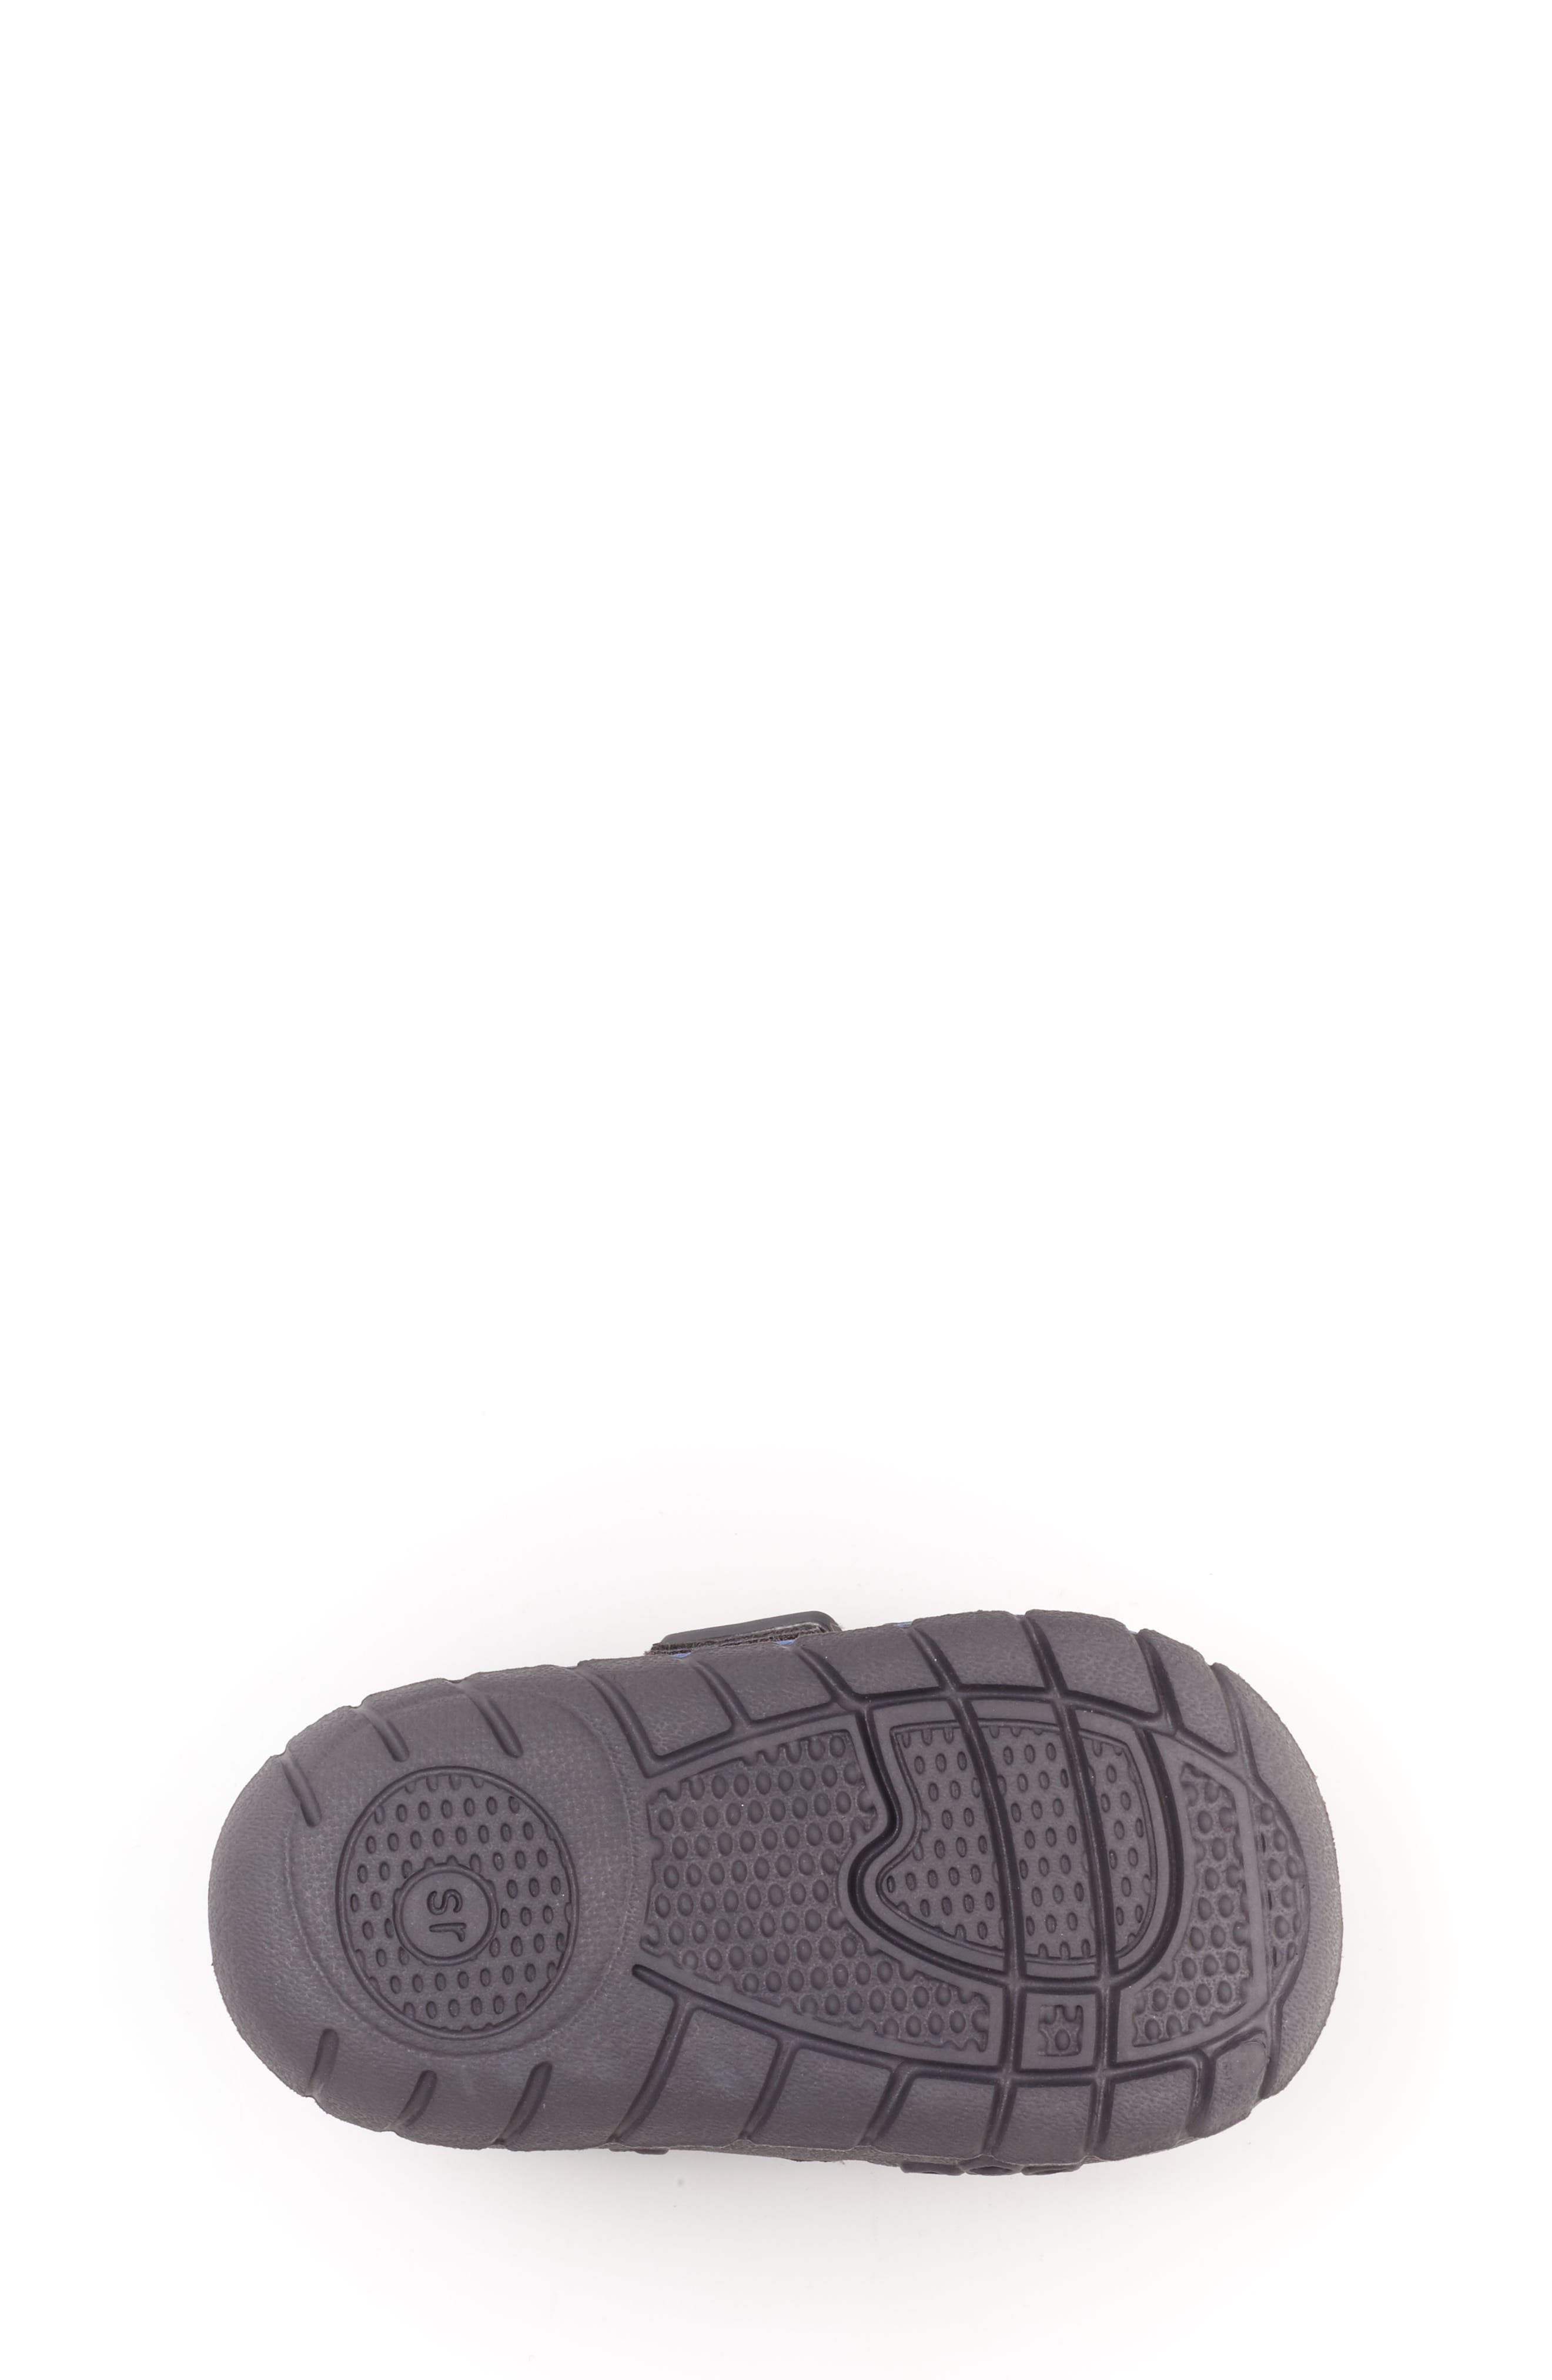 Made2Play<sup>®</sup> Phibian Sneaker,                             Alternate thumbnail 6, color,                             GREY/ GREY